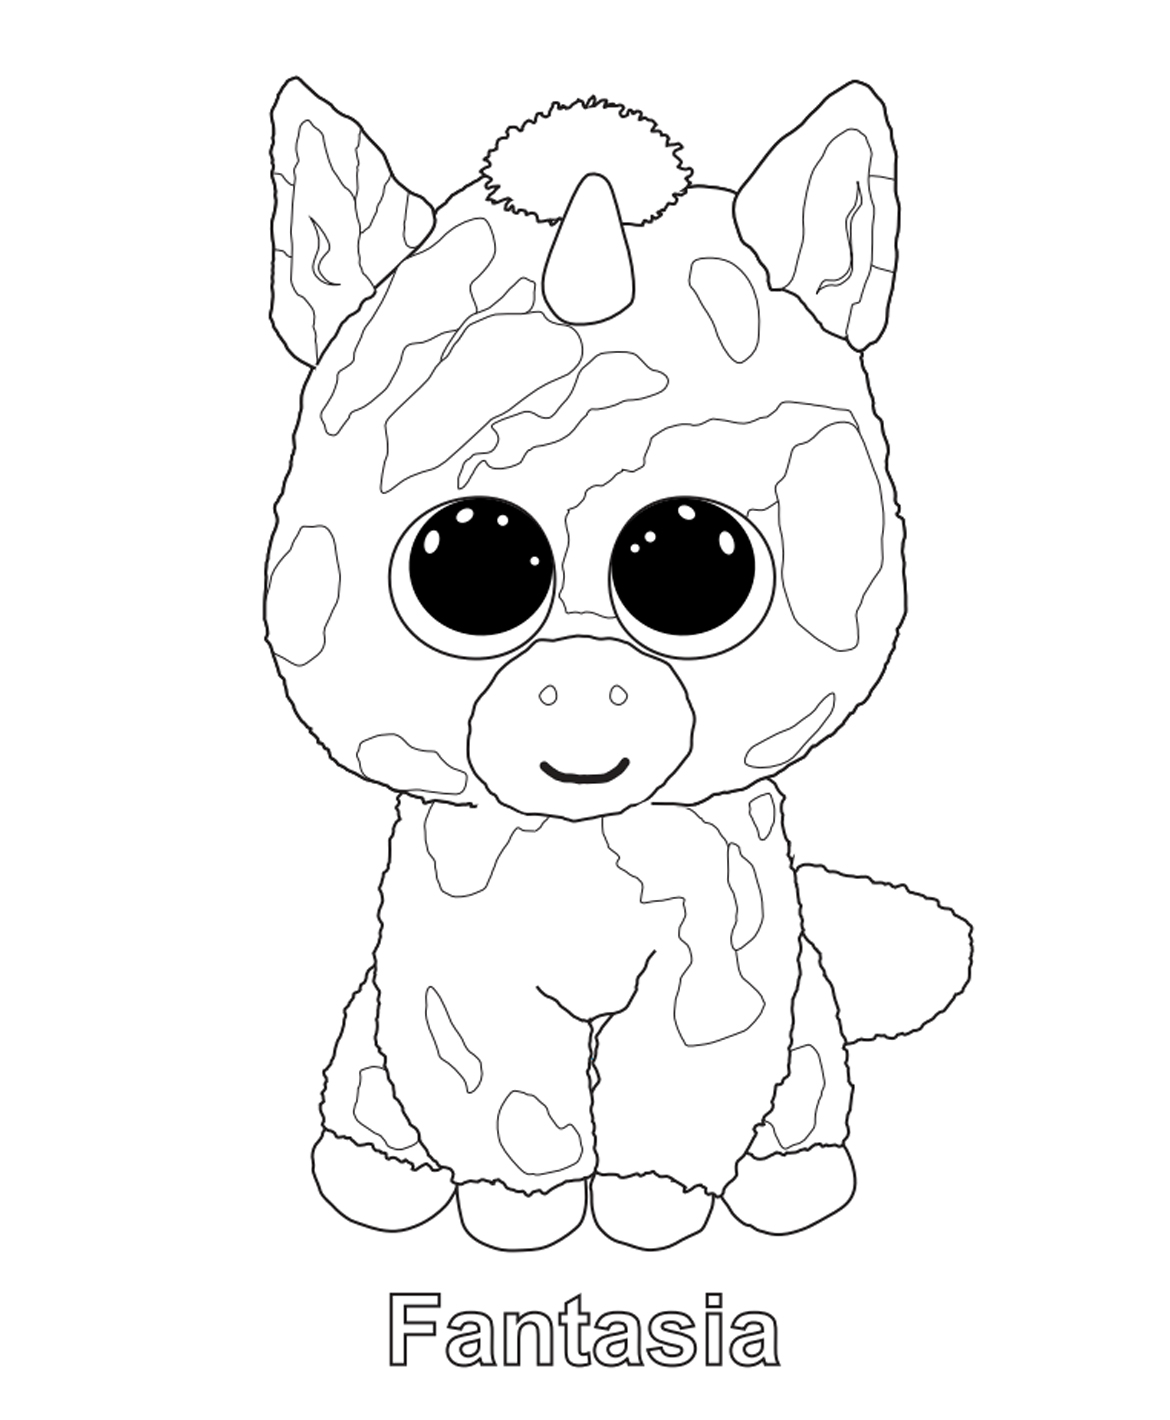 1170x1420 Beanie Boo Coloring Pages Free Printable Extraordinary Beanie Boos